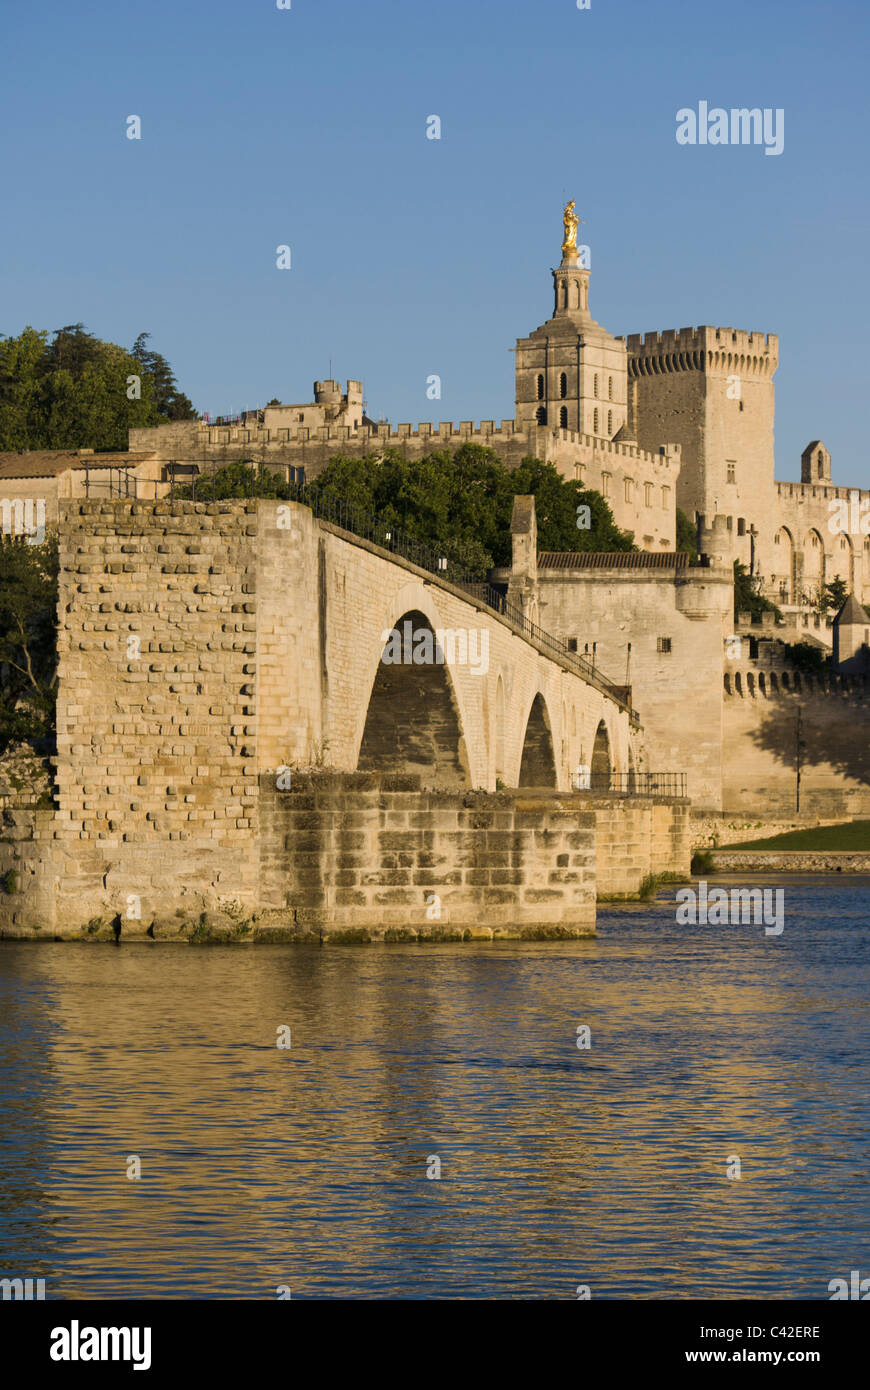 The Pont Saint-Bénezet, also known as the Pont d'Avignon, is a famous medieval bridge in the town of Avignon, - Stock Image